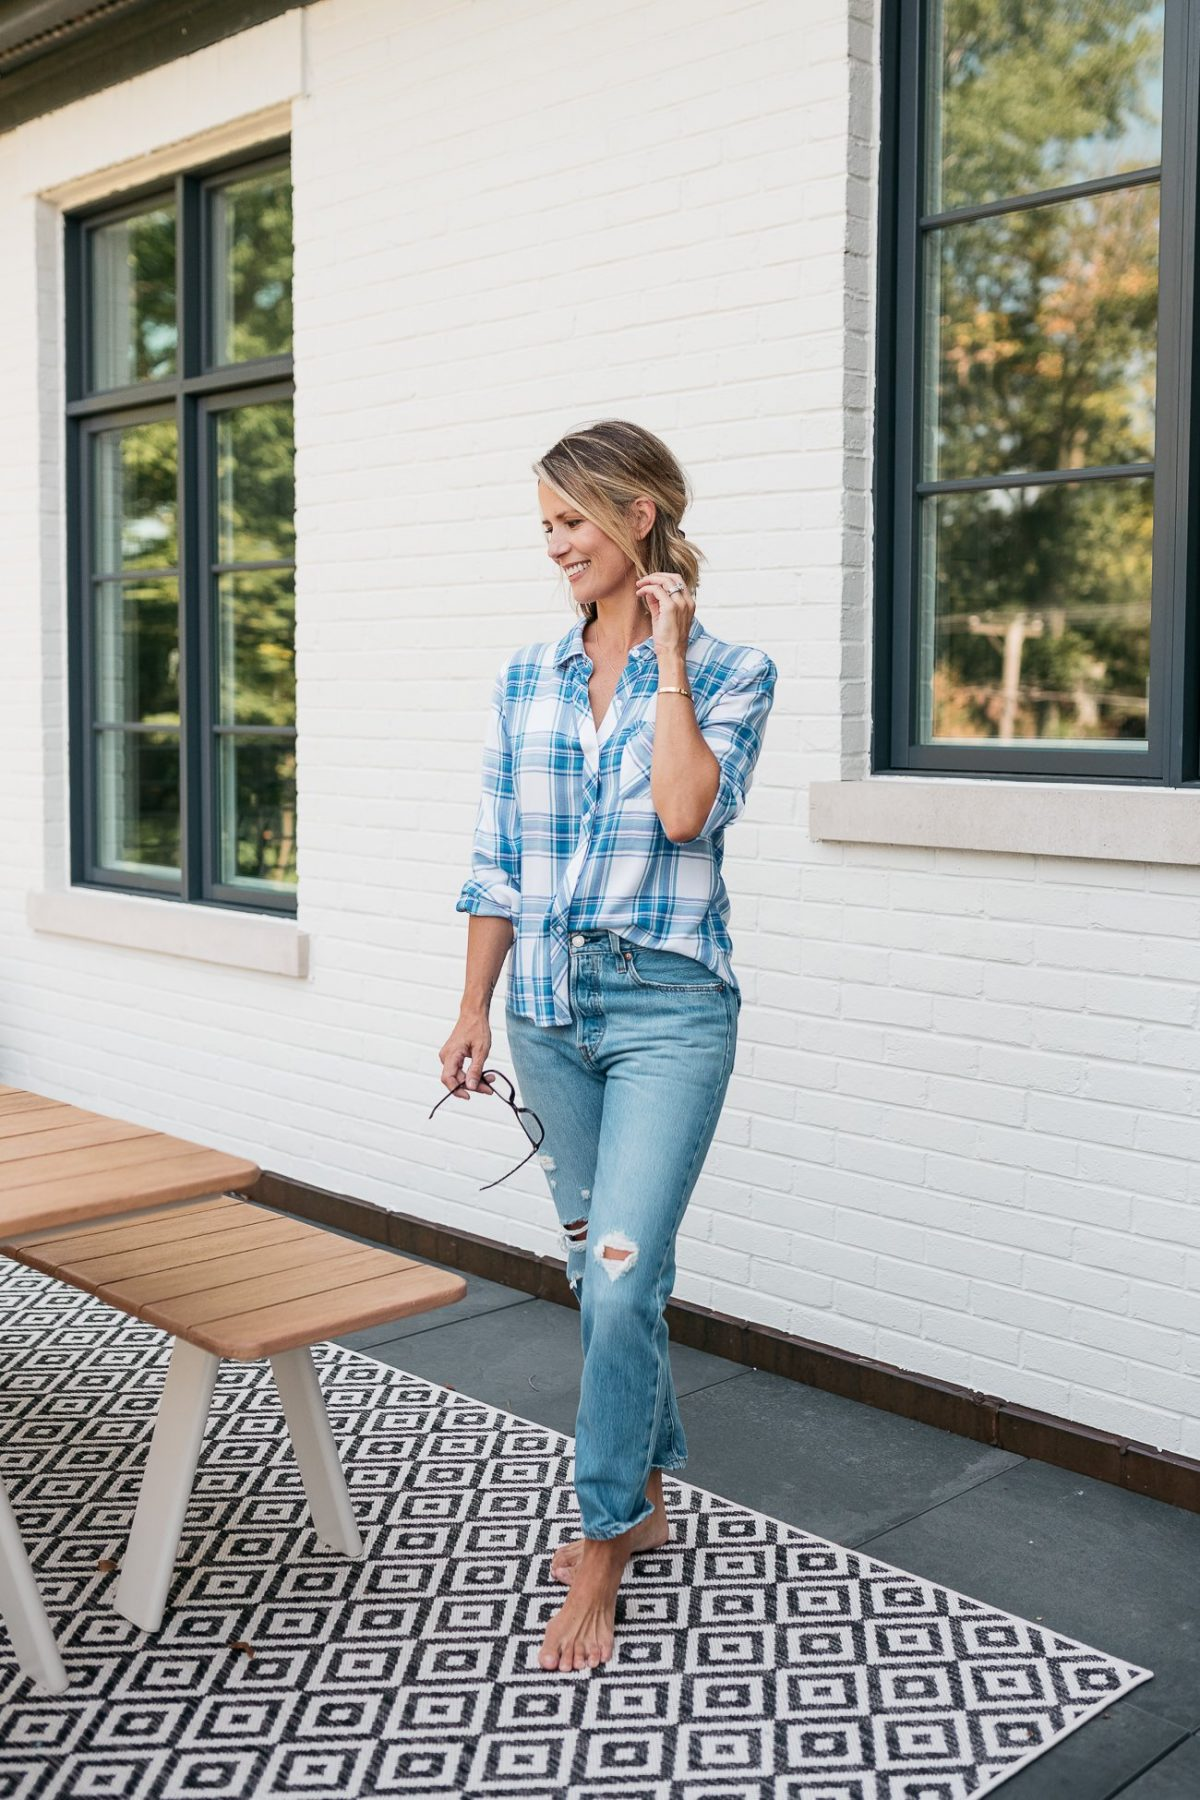 Summer to fall style: plaid shirt and boyfriend jeans